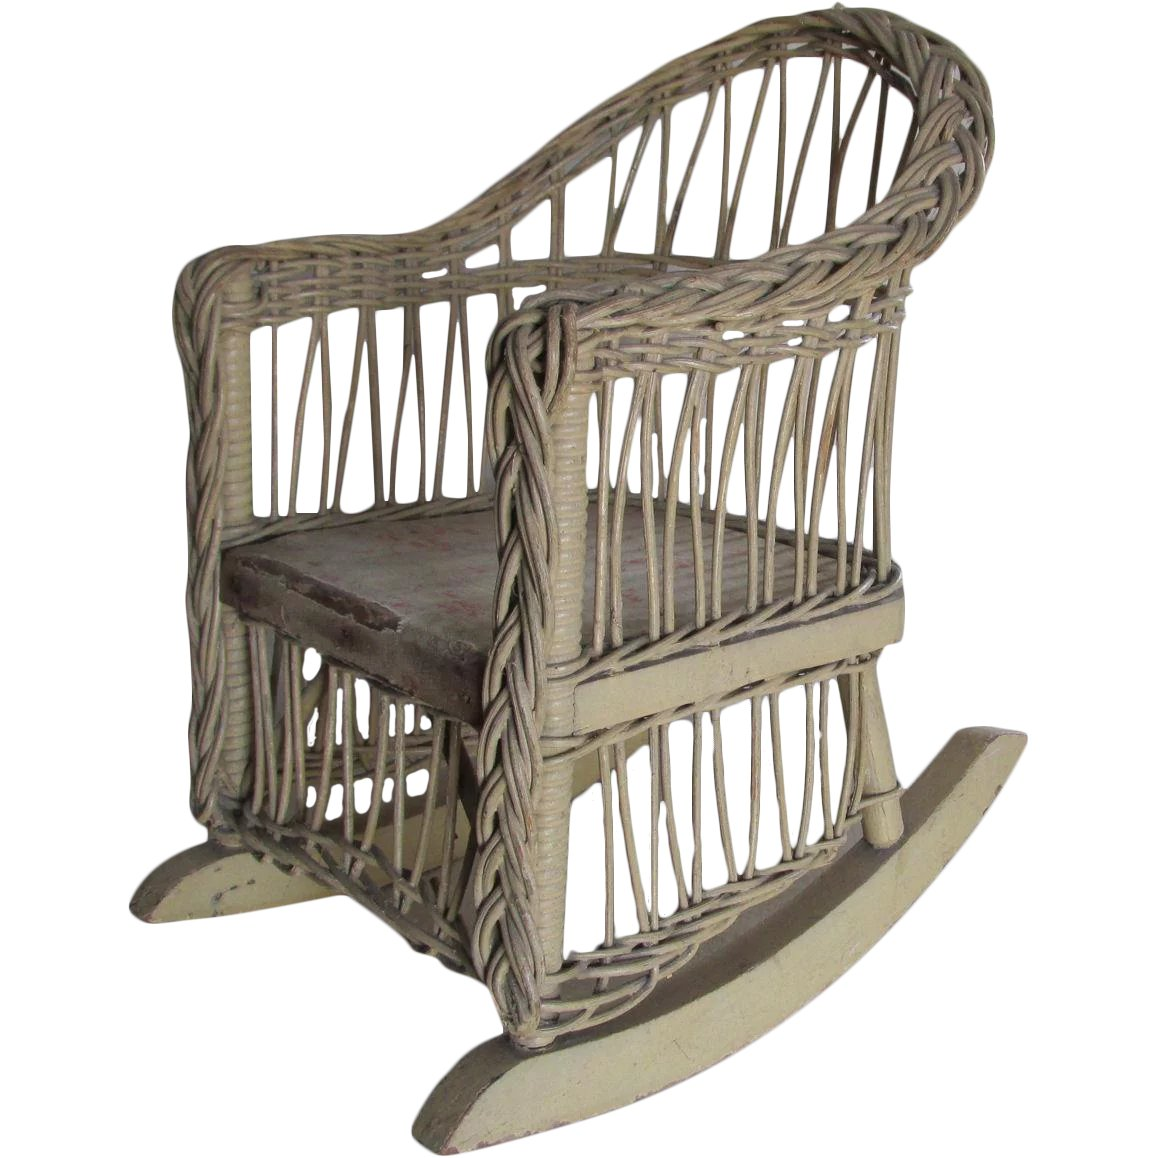 Wicker Rocking Chair Antique Wicker Rocking Chair For Doll Or Teddy Bear